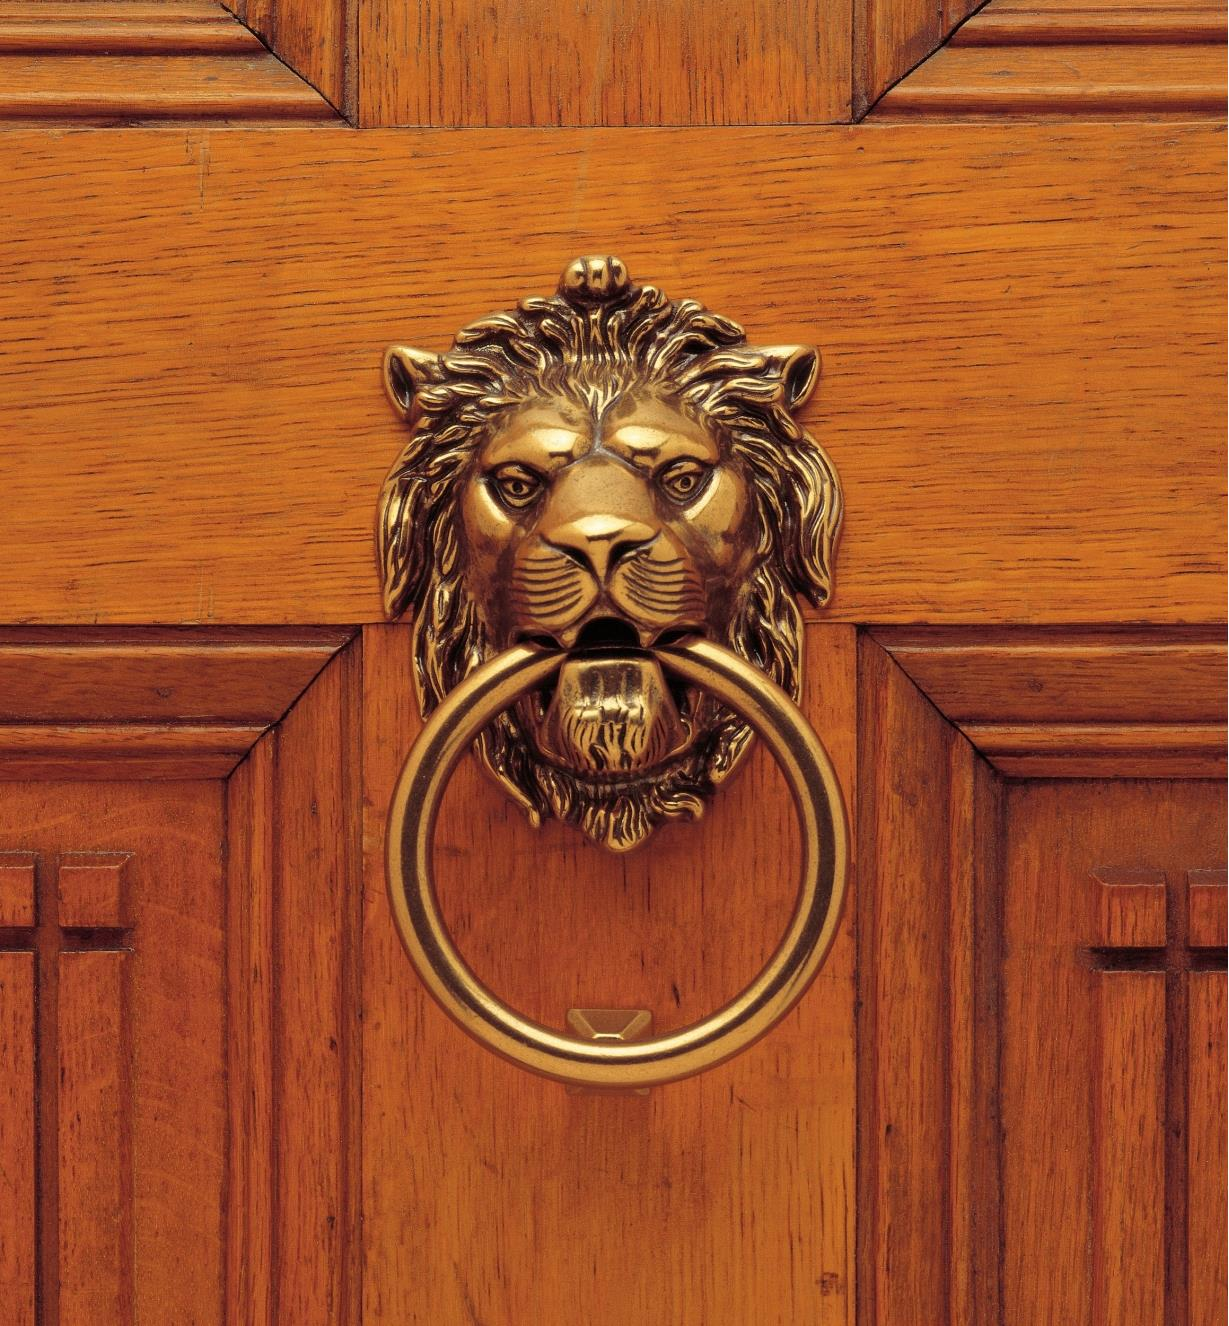 01A0195 - Lion's Head Door Knocker